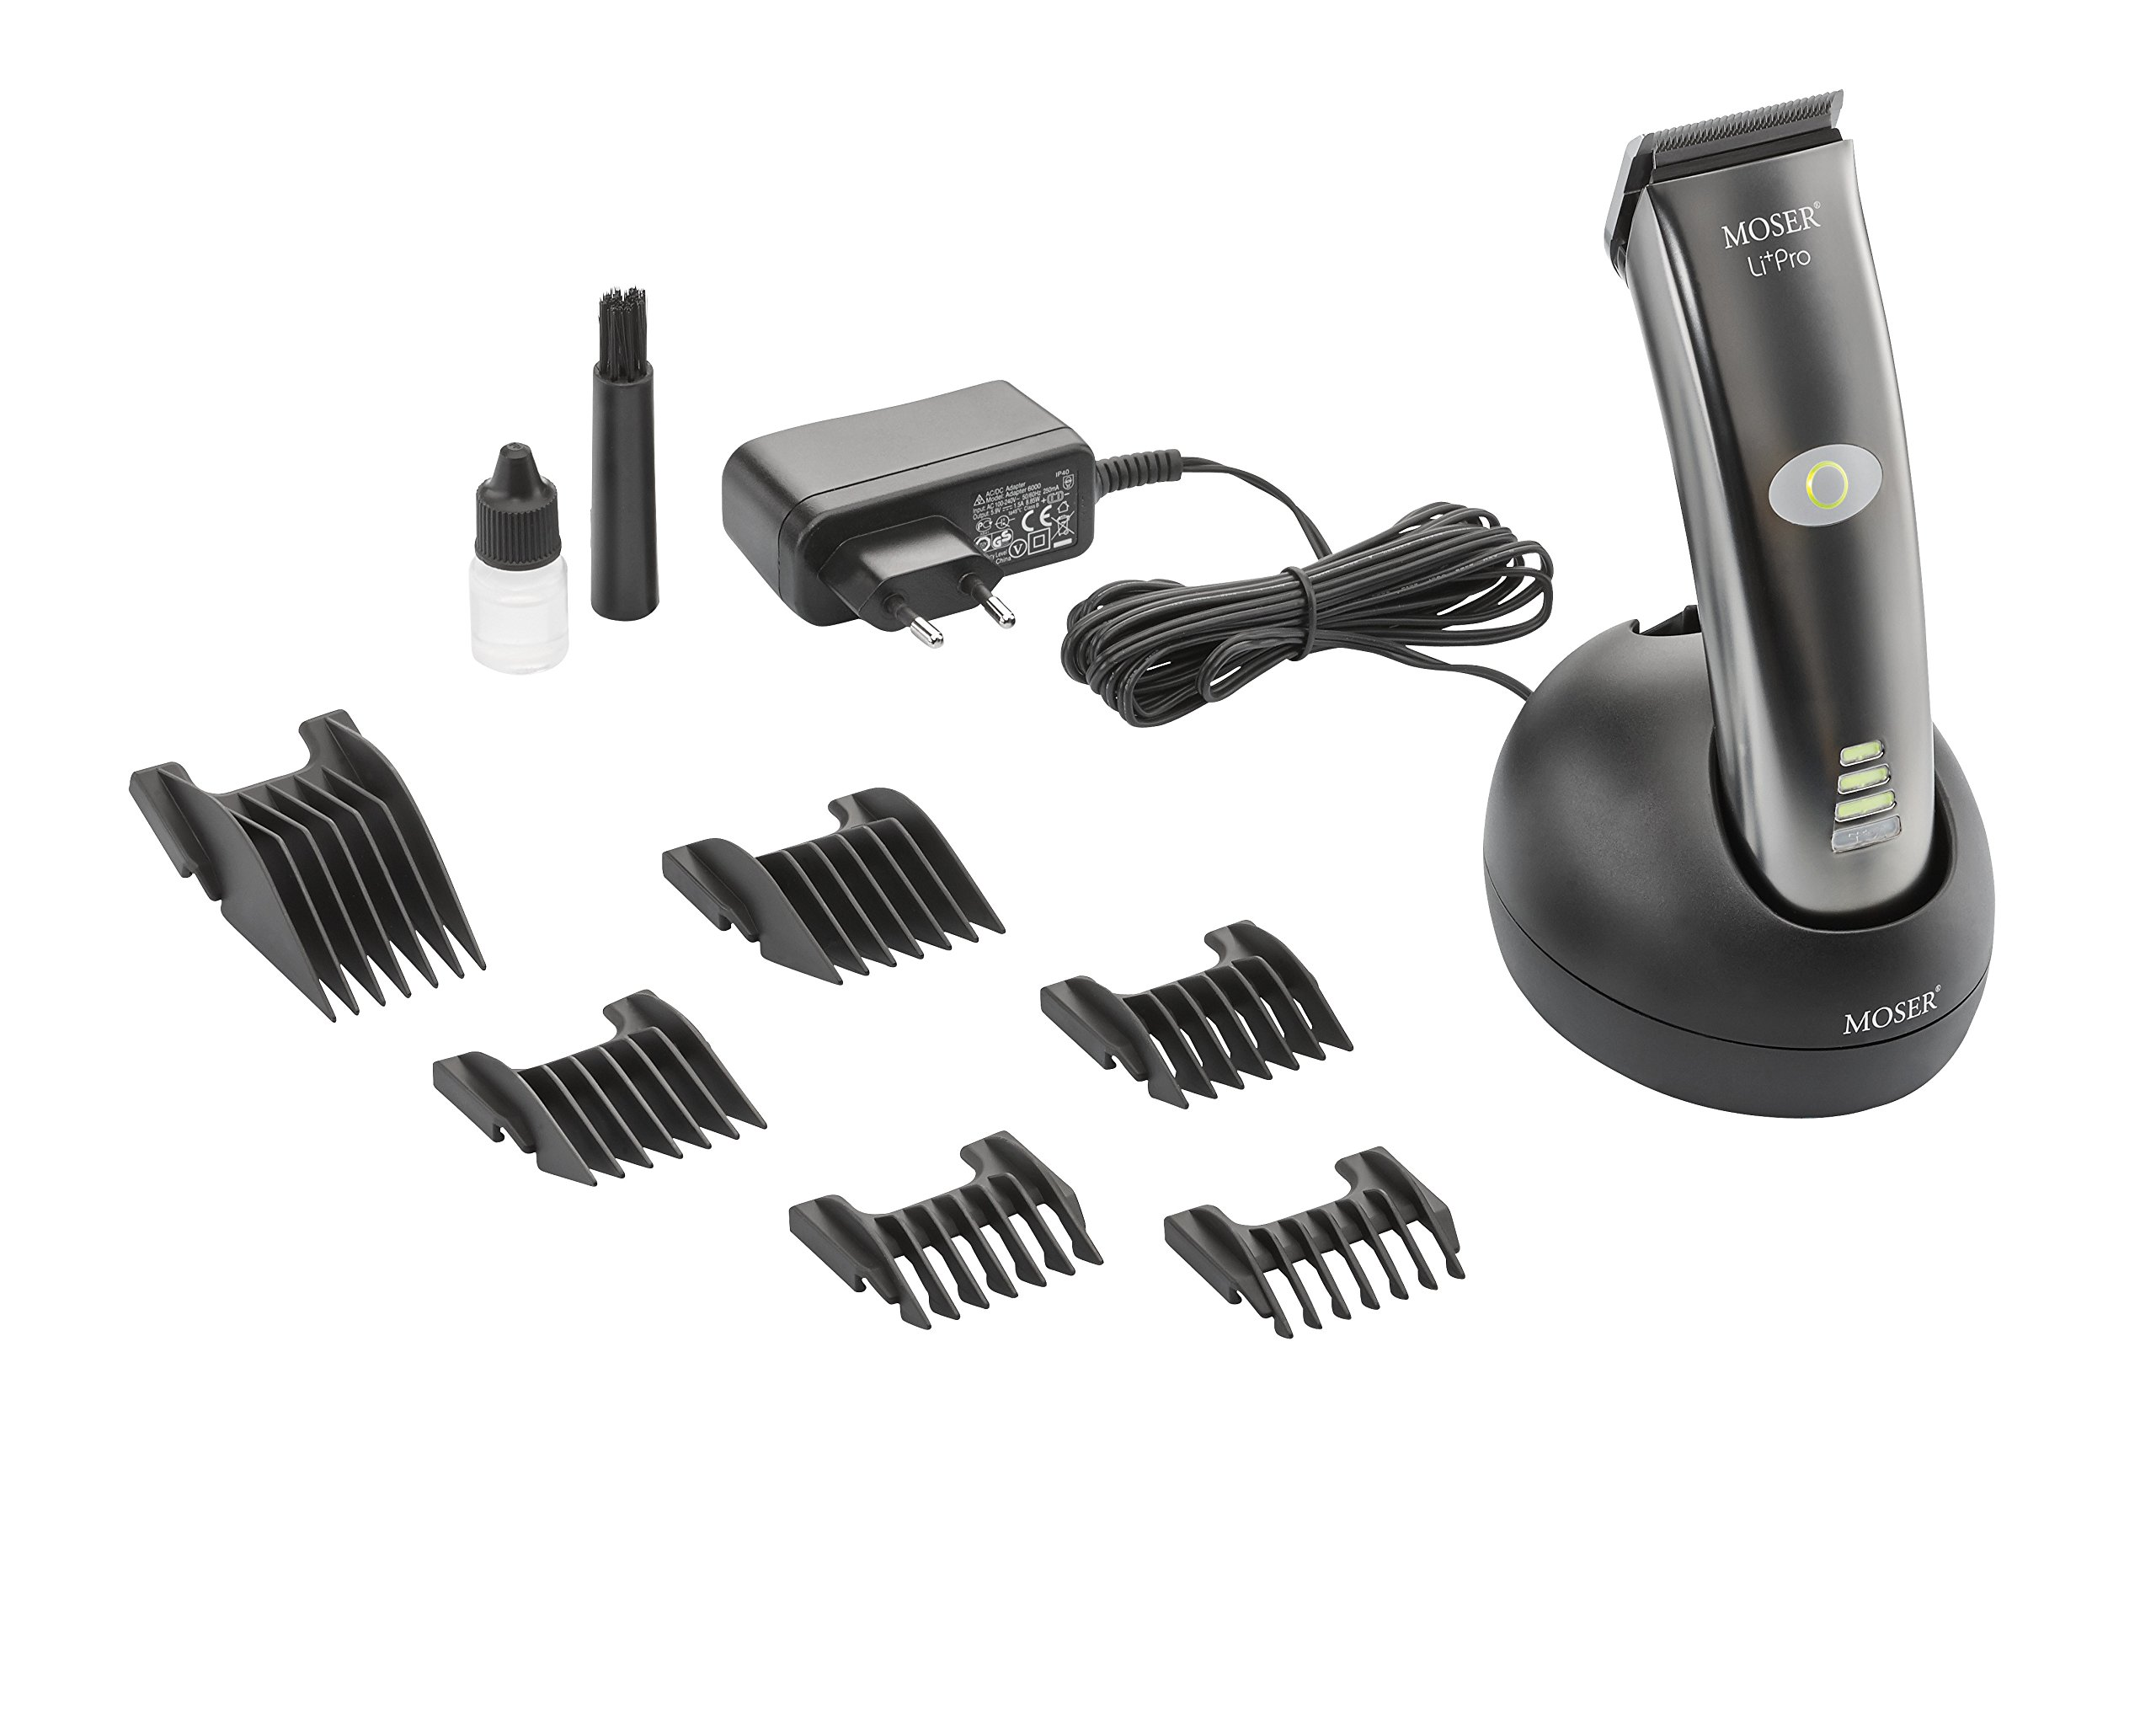 Amazon.com  NEW MOSER LI+PRO 1884 Professional Hair Clipper Cord Cordless  100-240V  Health   Personal Care 061010a2425